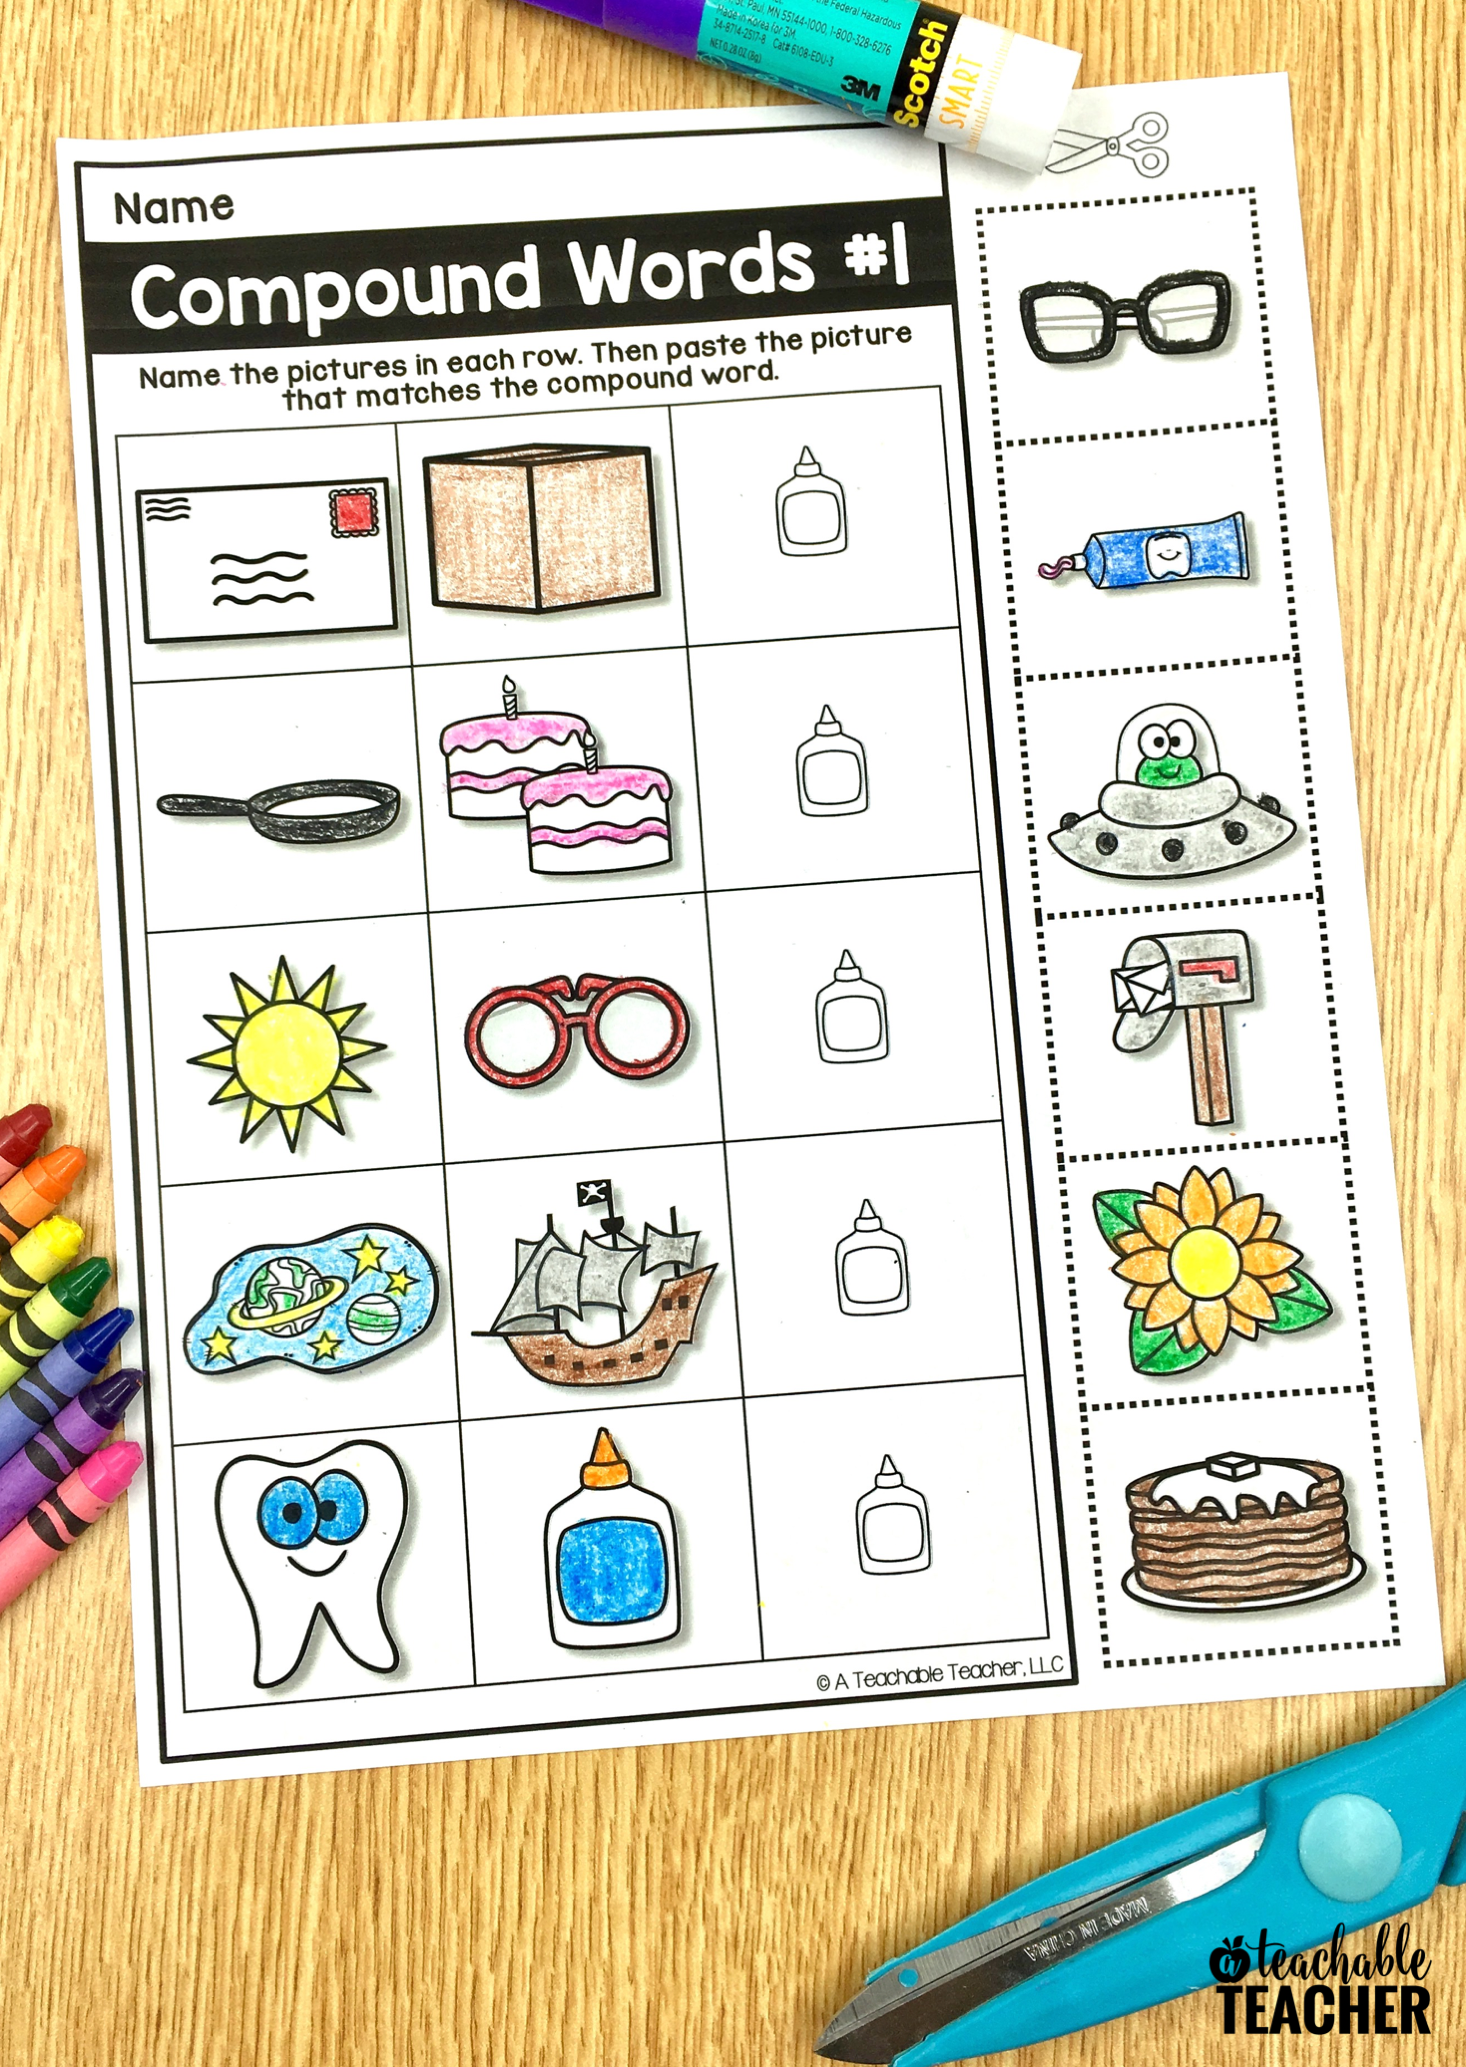 Free Phonemic Awareness Worksheets Interactive And Picture Based Compound Words Phonemic Awareness Activities Compound Words Activities [ 2067 x 1466 Pixel ]